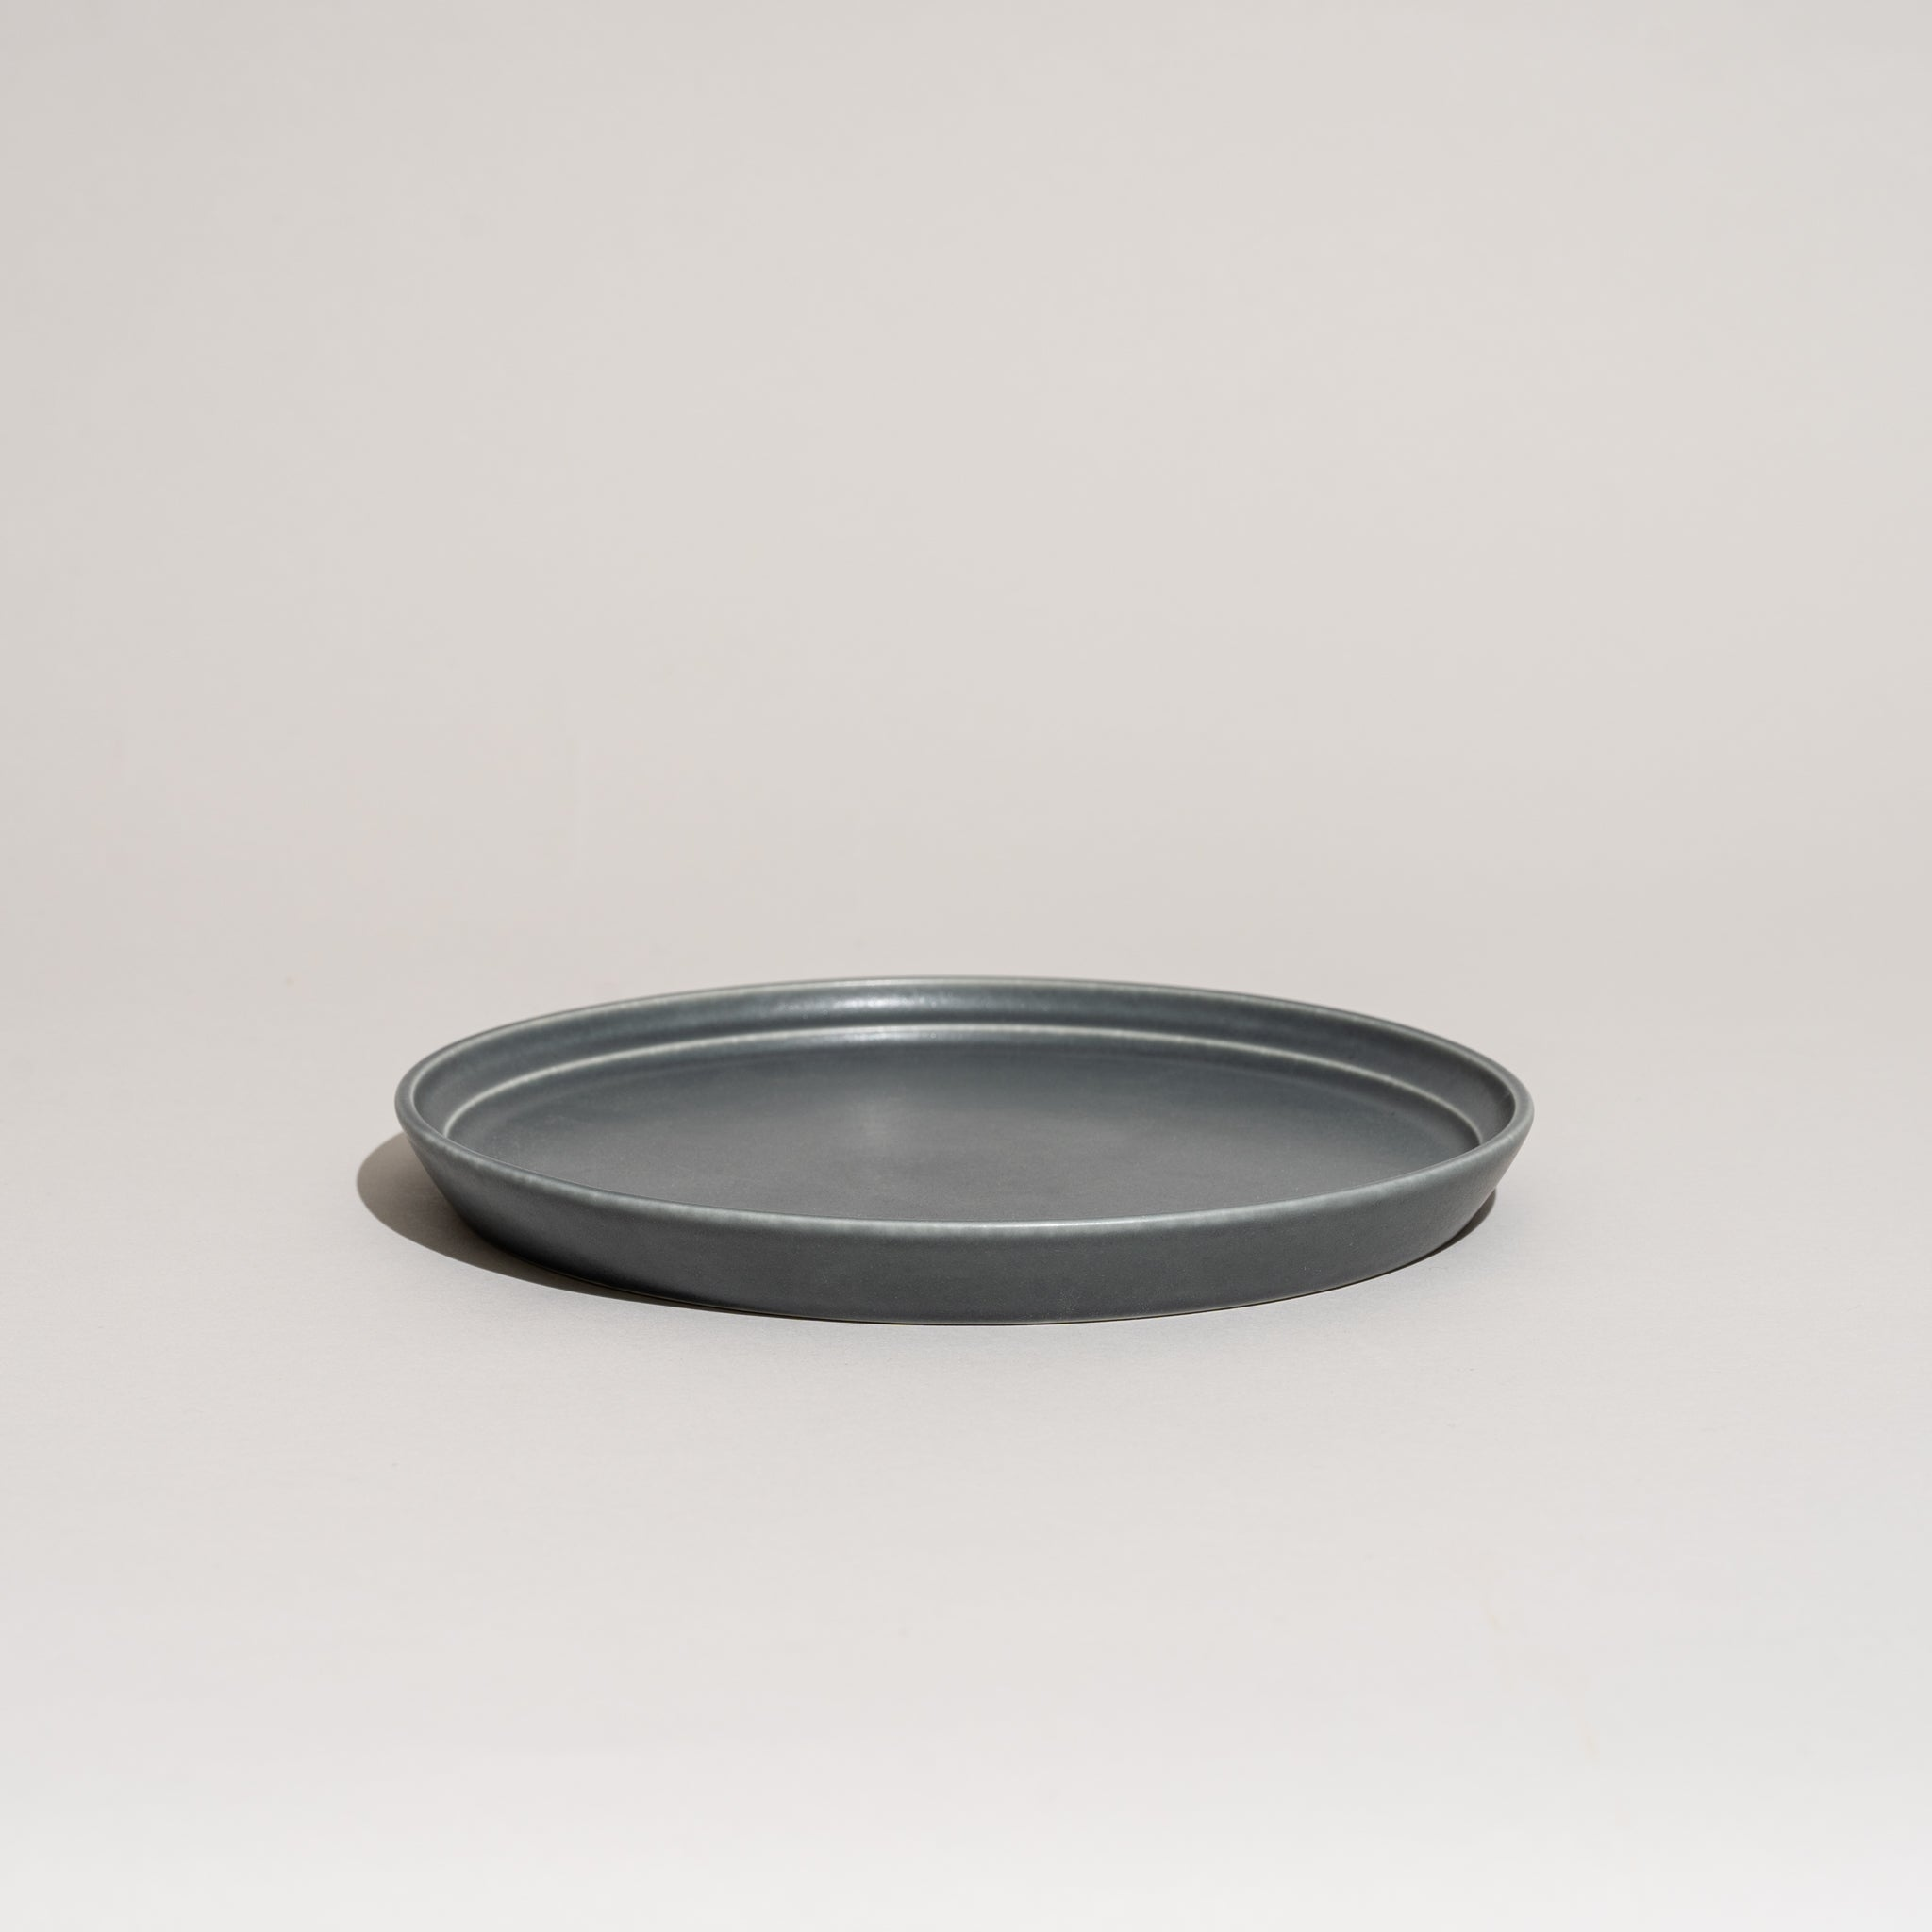 "Fog Plate (8"" - Dark Gray)"